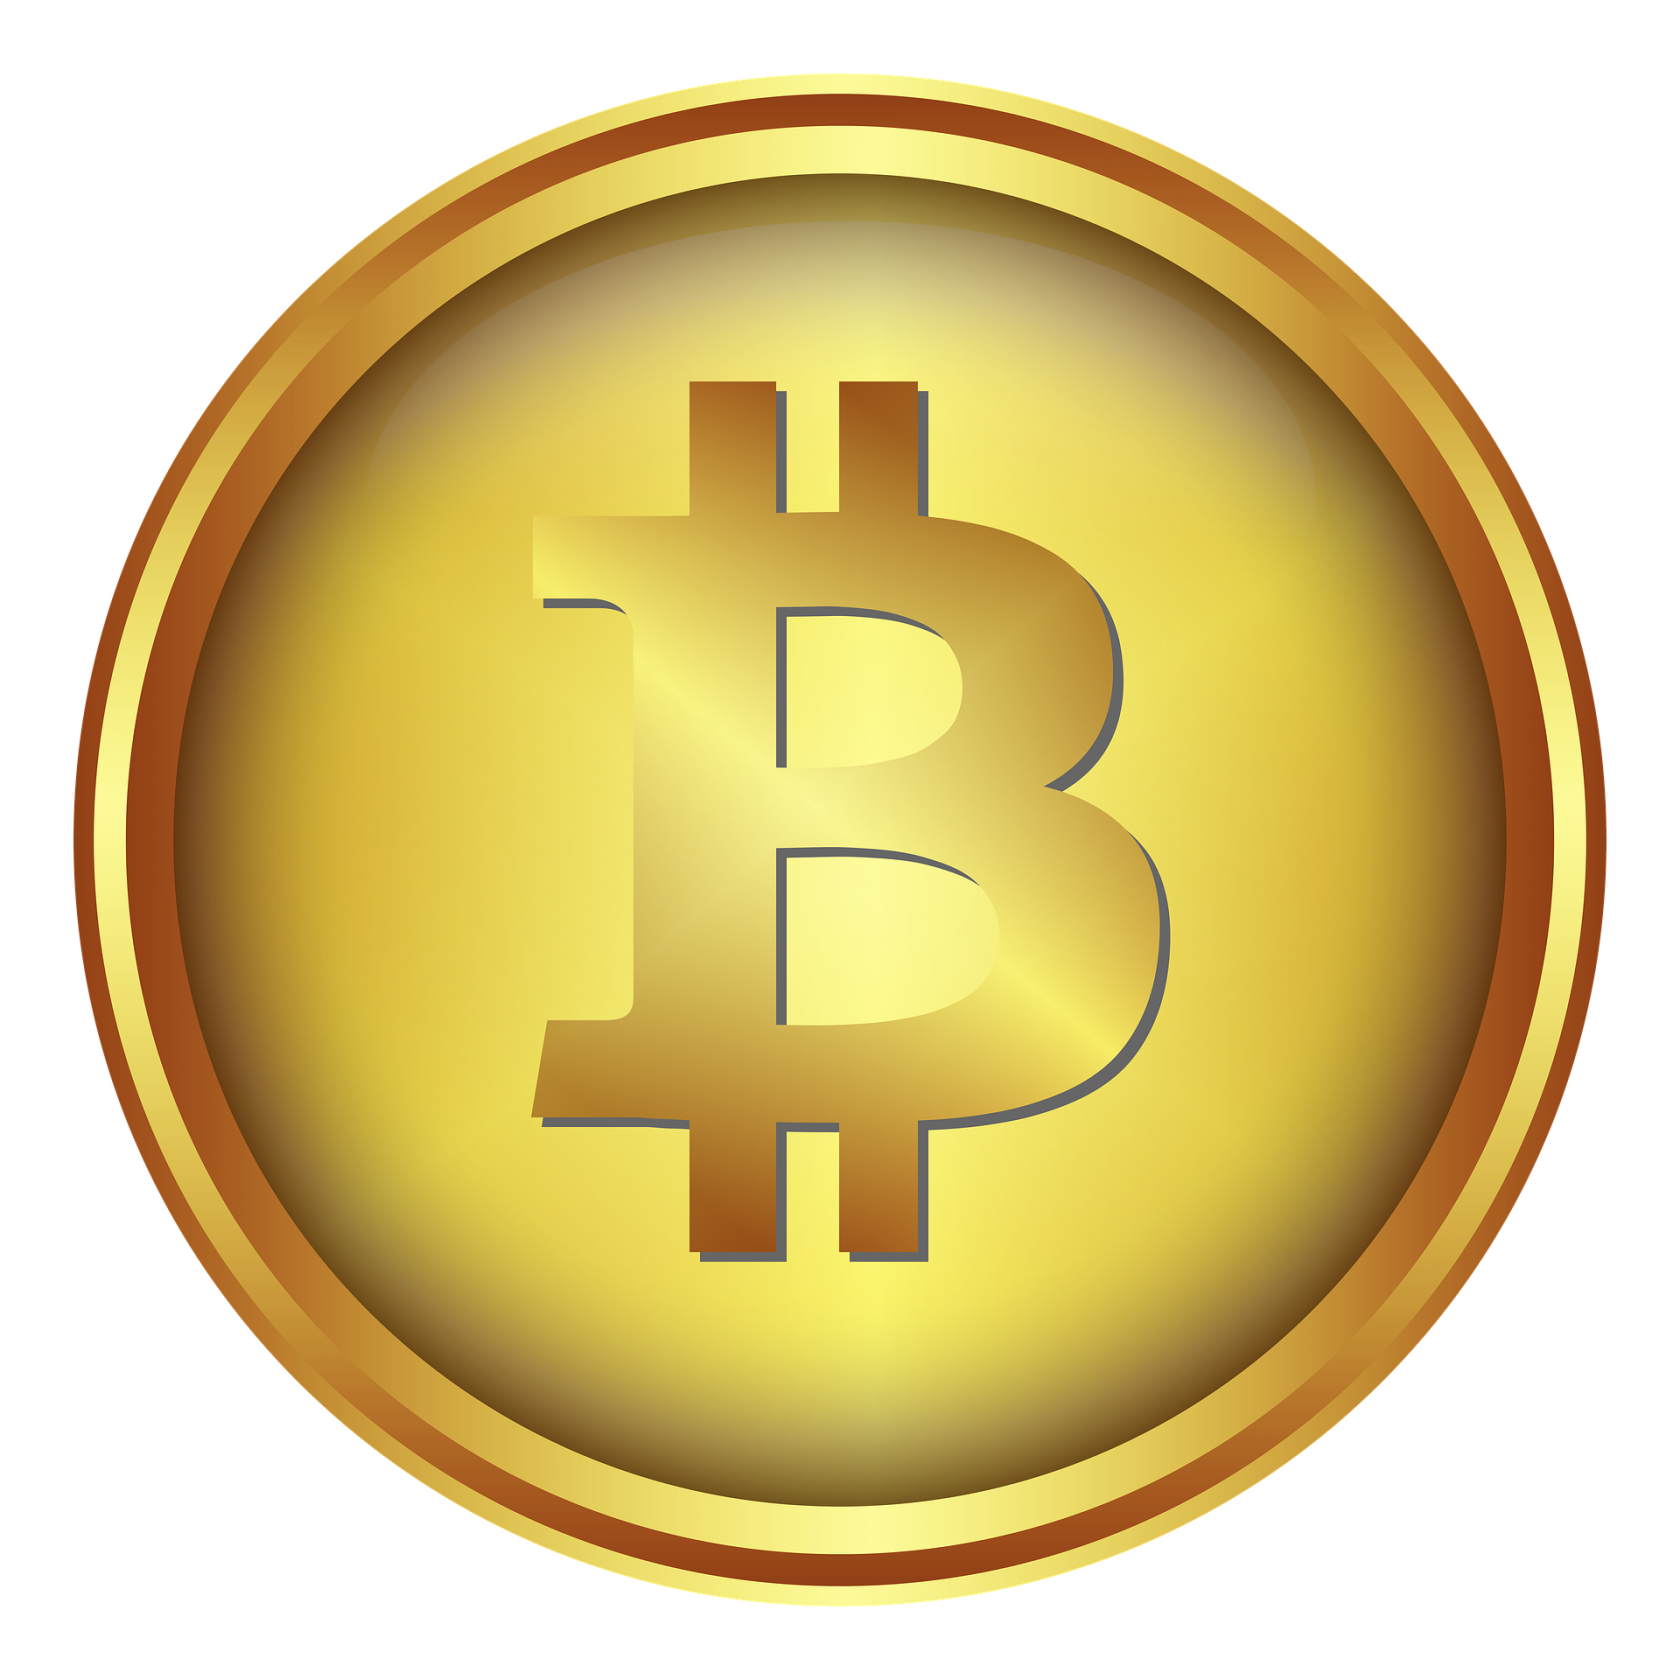 Gold Exchange Blockchain Bitcoin Cryptocurrency Lakshmi Coin PNG Image